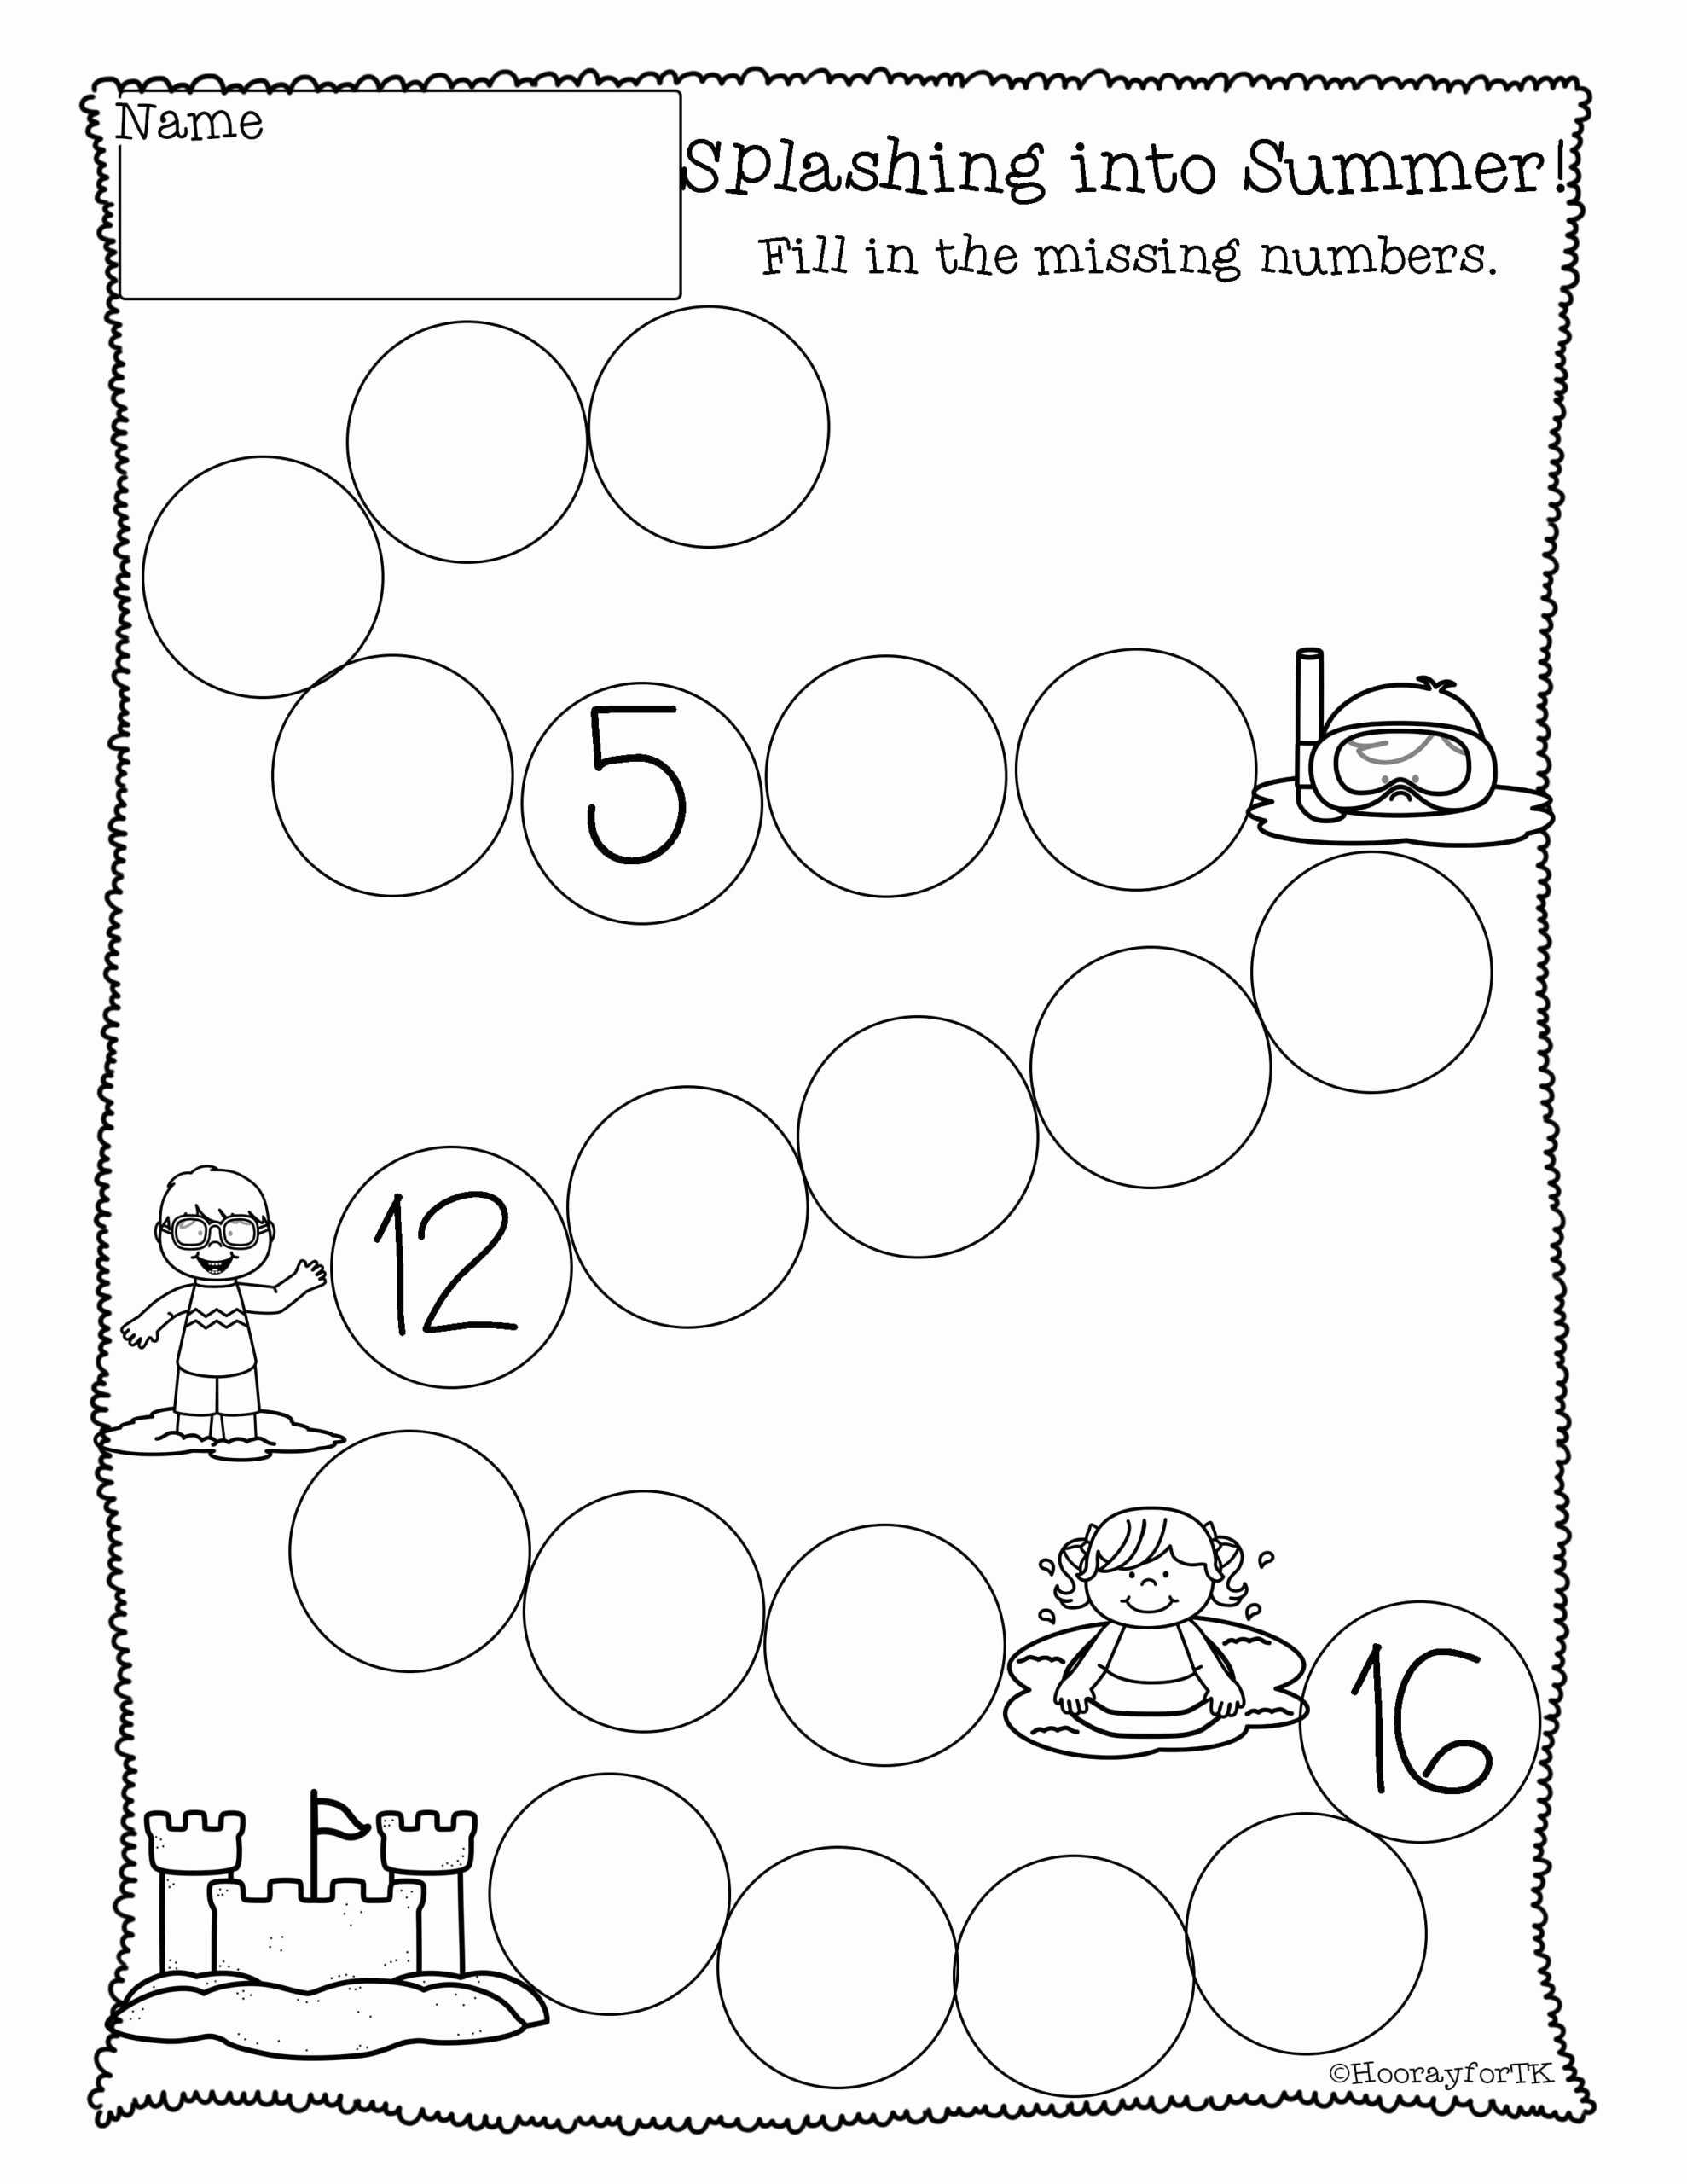 Worksheets for Preschoolers In Math Lovely Worksheets Printable Math Activities Kindergarten Free Pre